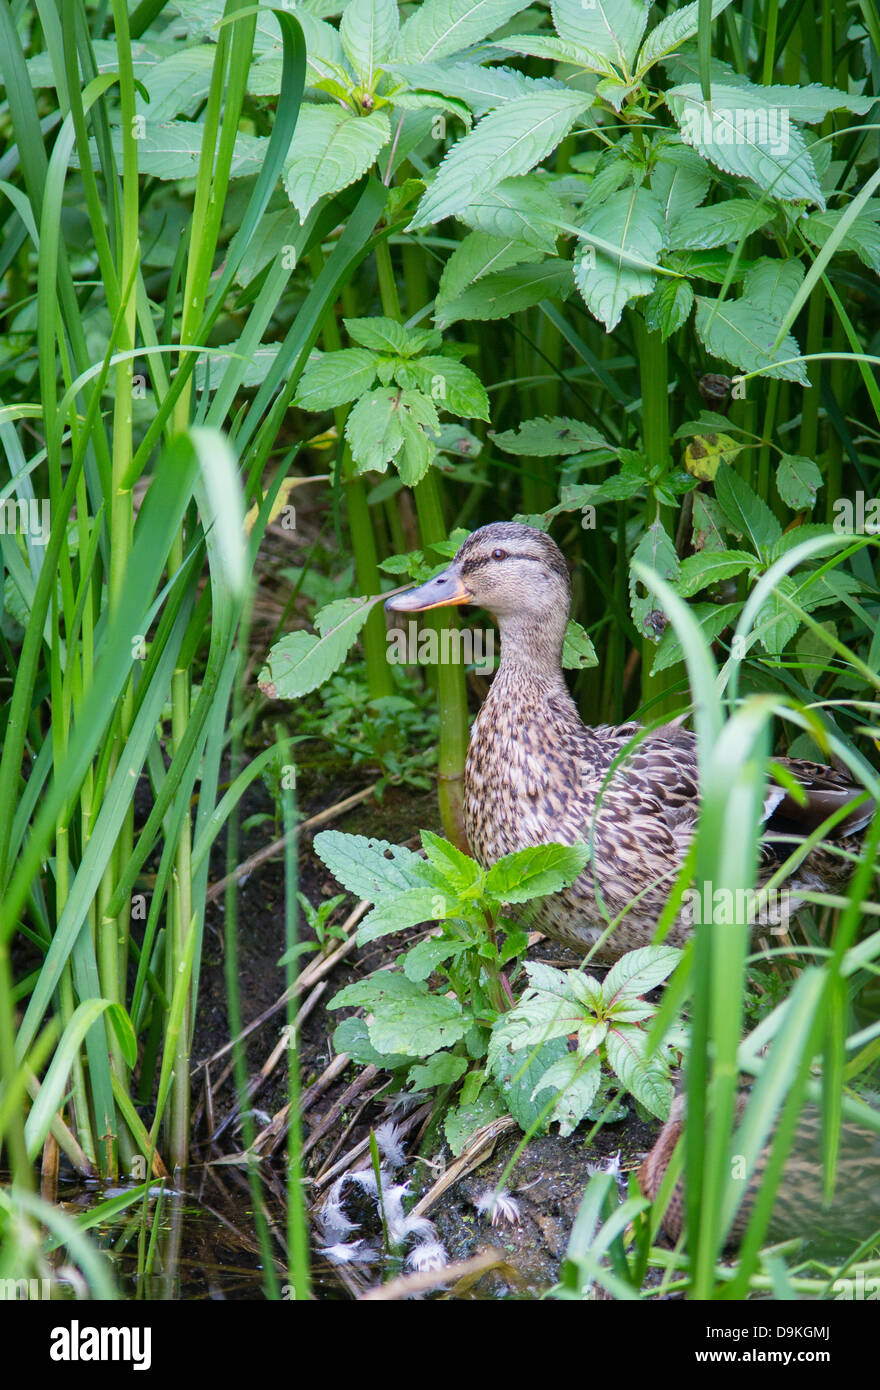 Mallard duck female amongst vegetation on the banks of the Cromford canal in Derbyshire UK - Stock Image